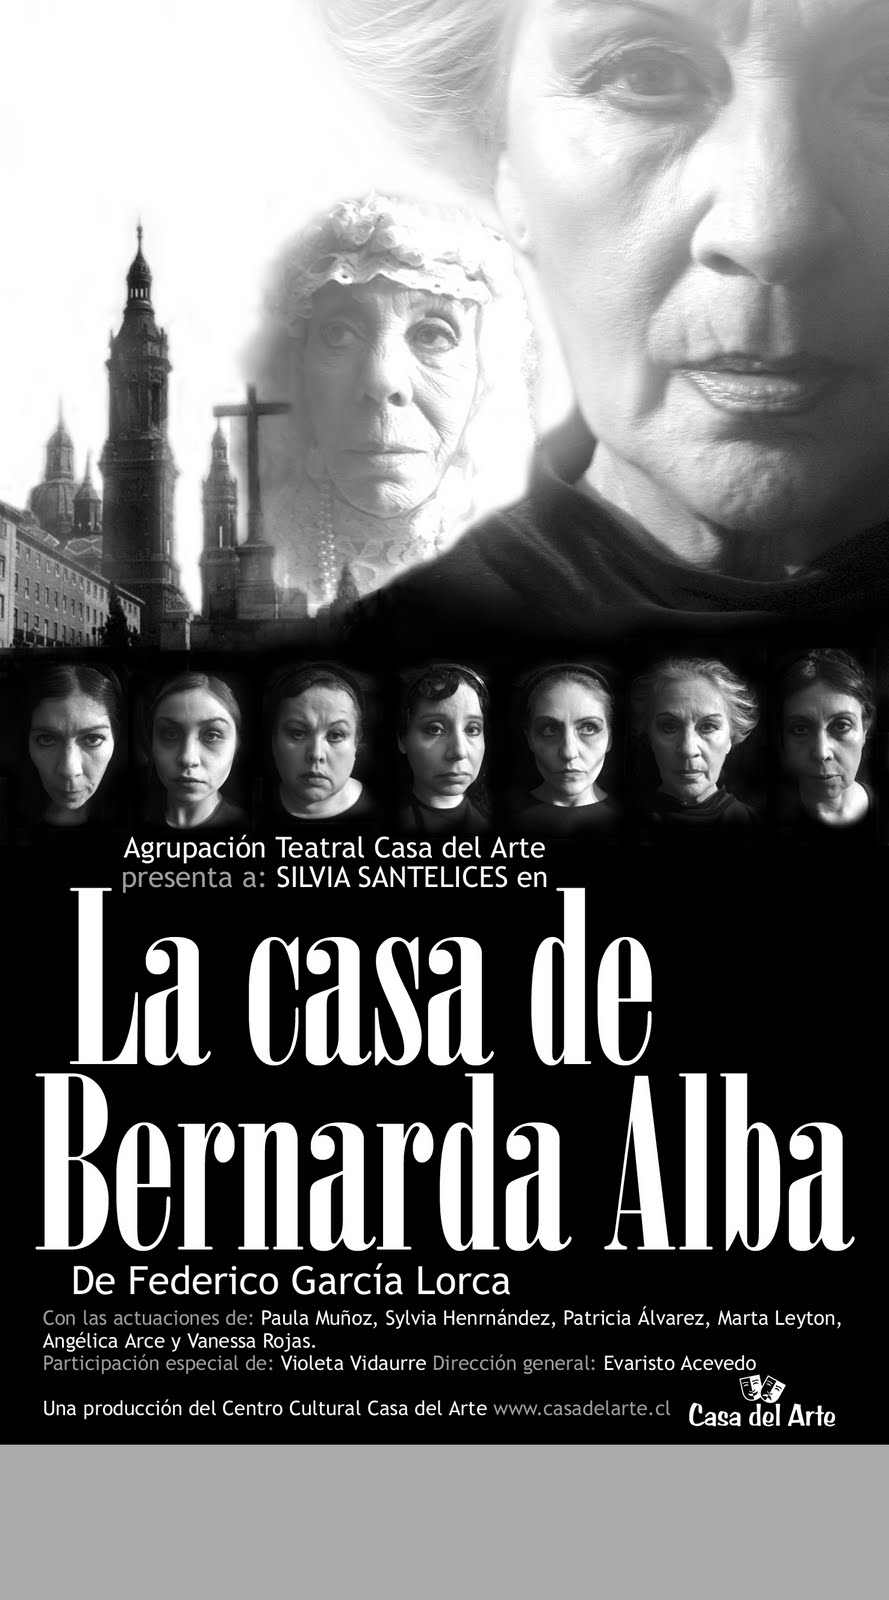 casa de bernarda alba essay This student essay consists of approximately 4 pages of analysis of symbolism in &quotla casa de bernarda alba&quot summary: relates the play, la casa de bernarda alba by federico garcía lorca to the spanish civil war federico garcía lorca's play, la casa de bernarda alba, is open to many.